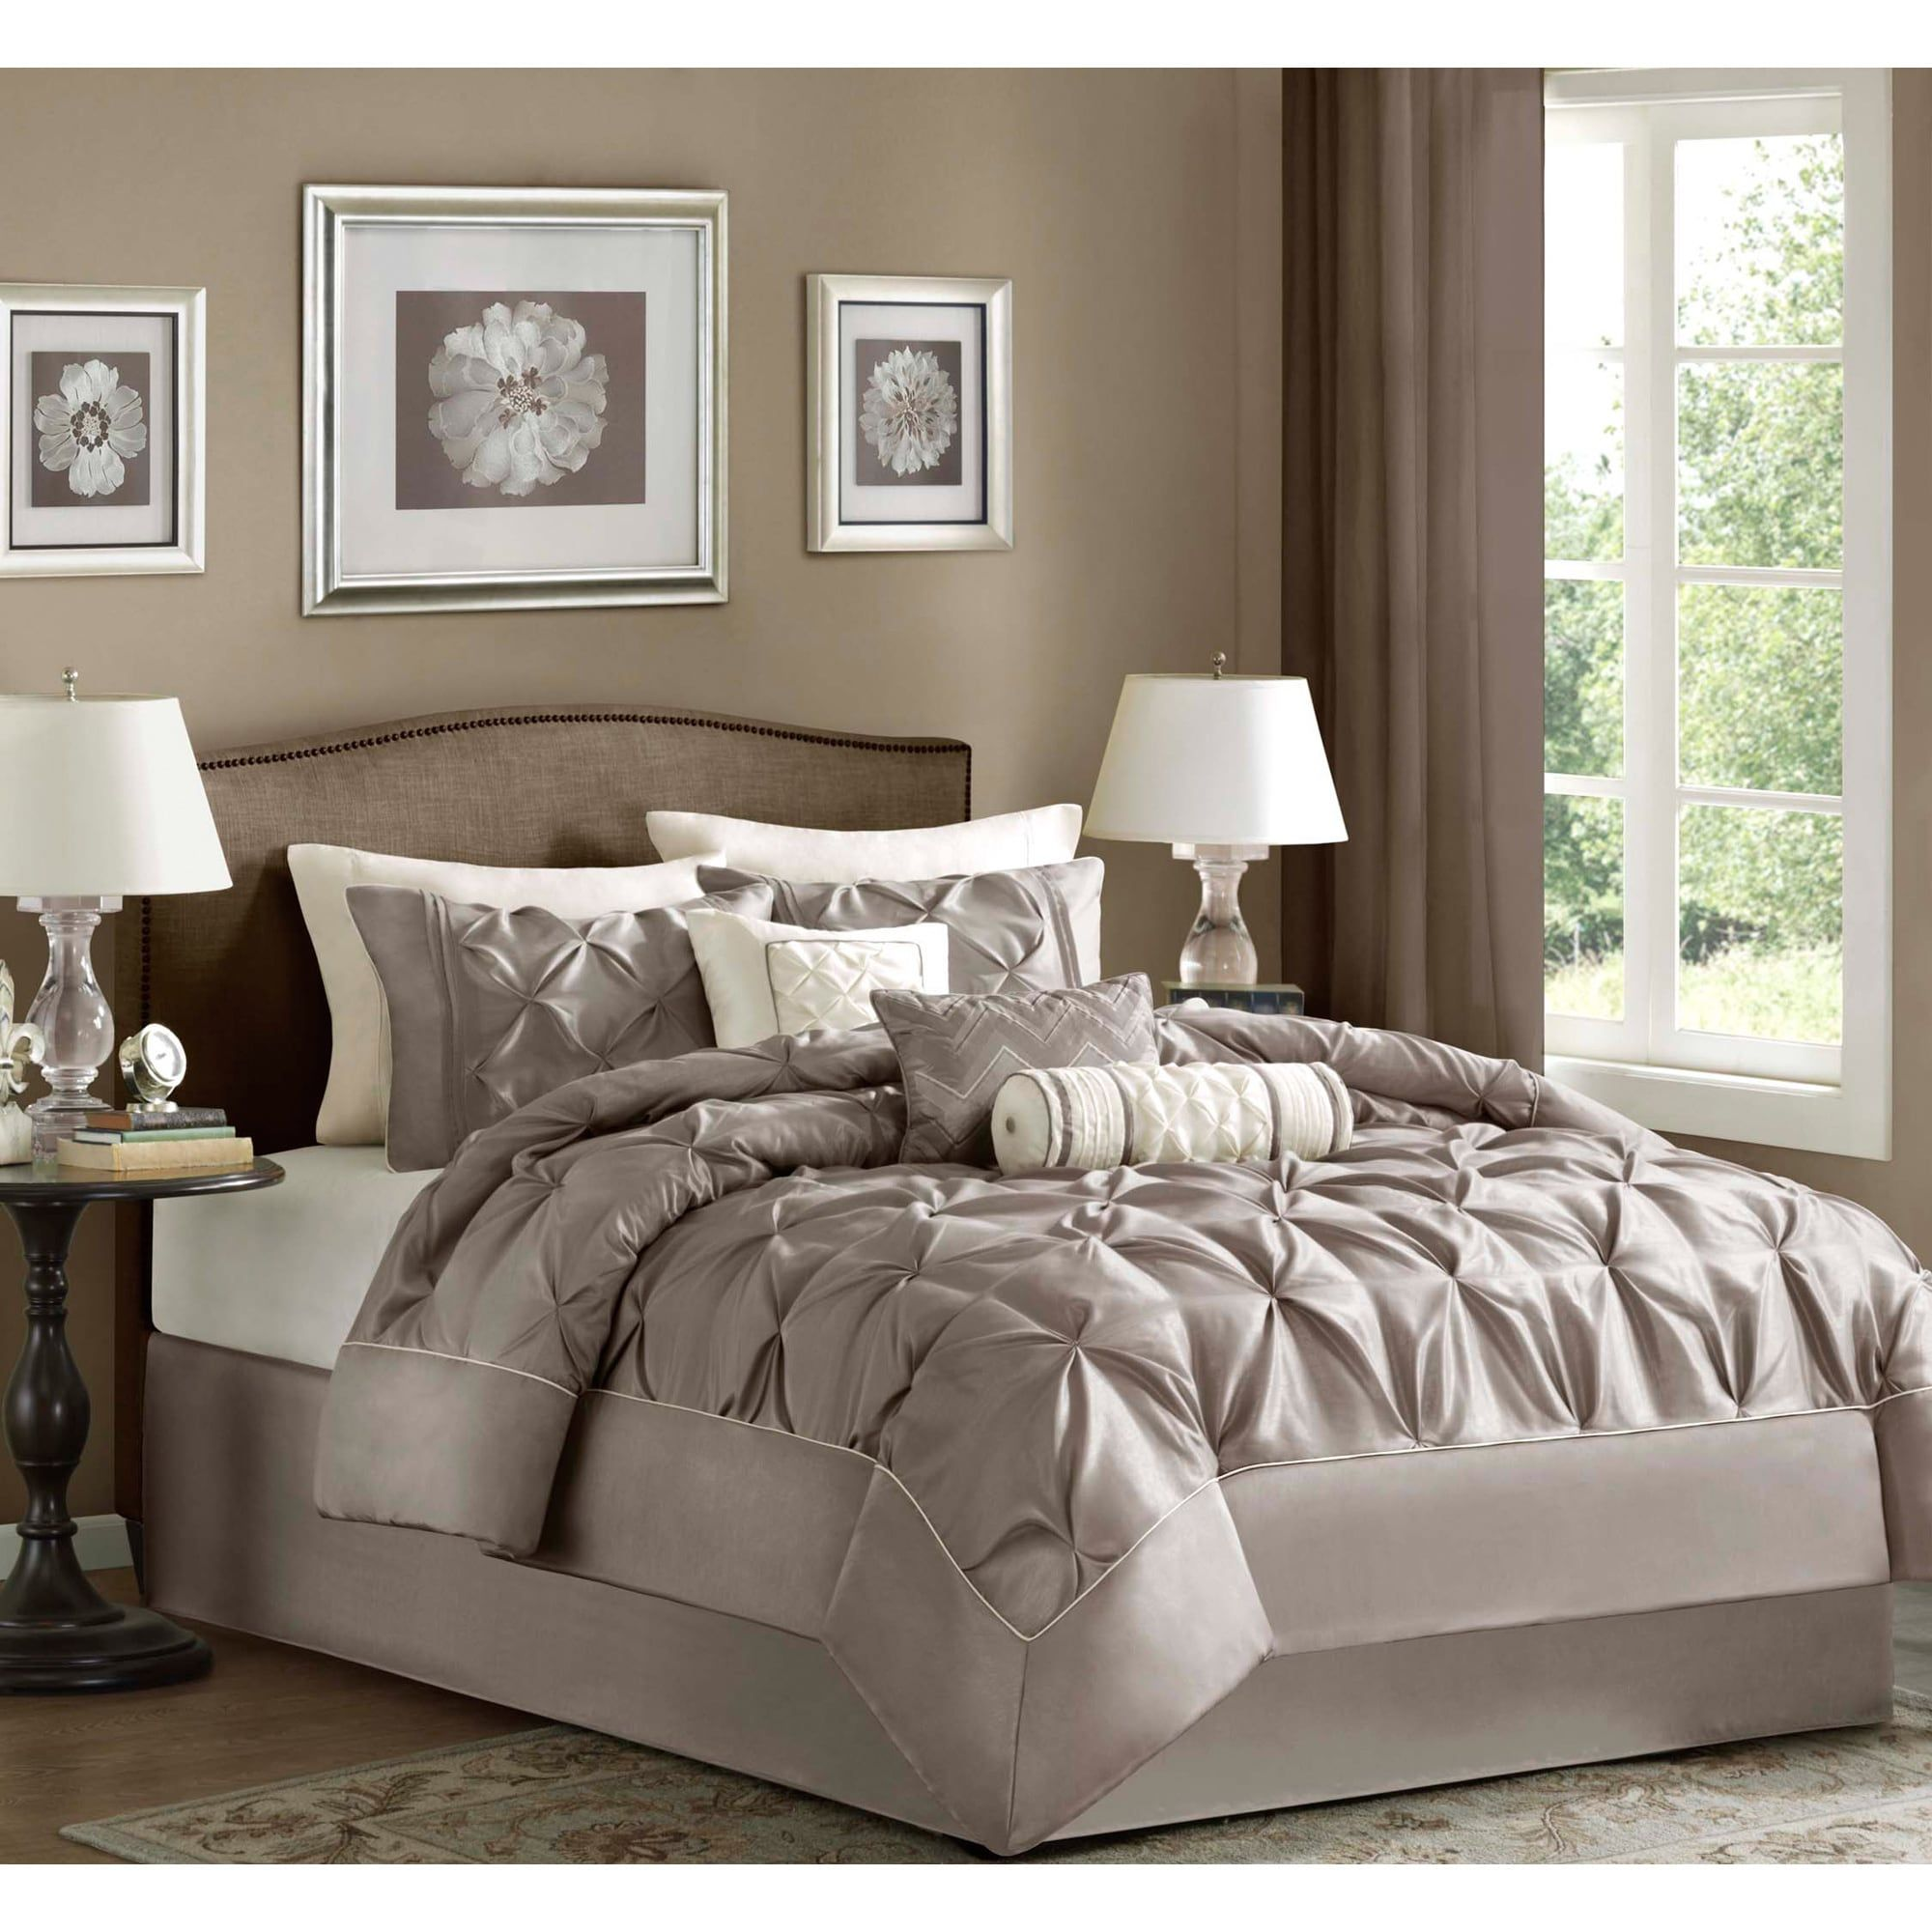 marvelous with matching you comforters bedspreads tufted pattern when and round like bedding flower tips cushion comforter added buy to curtains